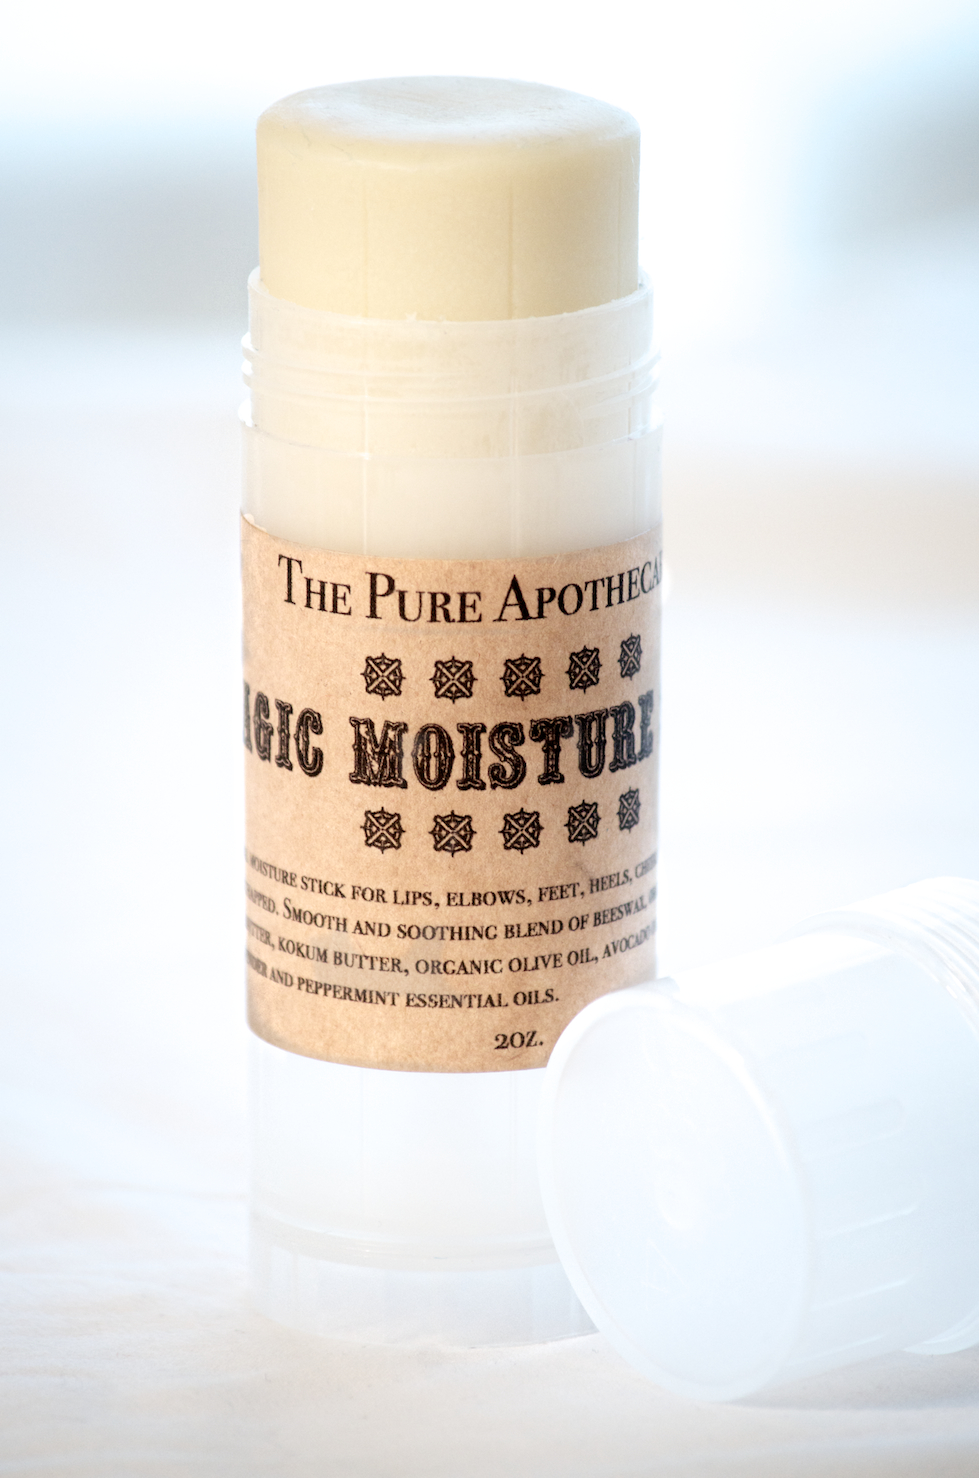 The Magic Moisture Stick by The Pure Apothecary/Image: C. Hope for Style Wylde